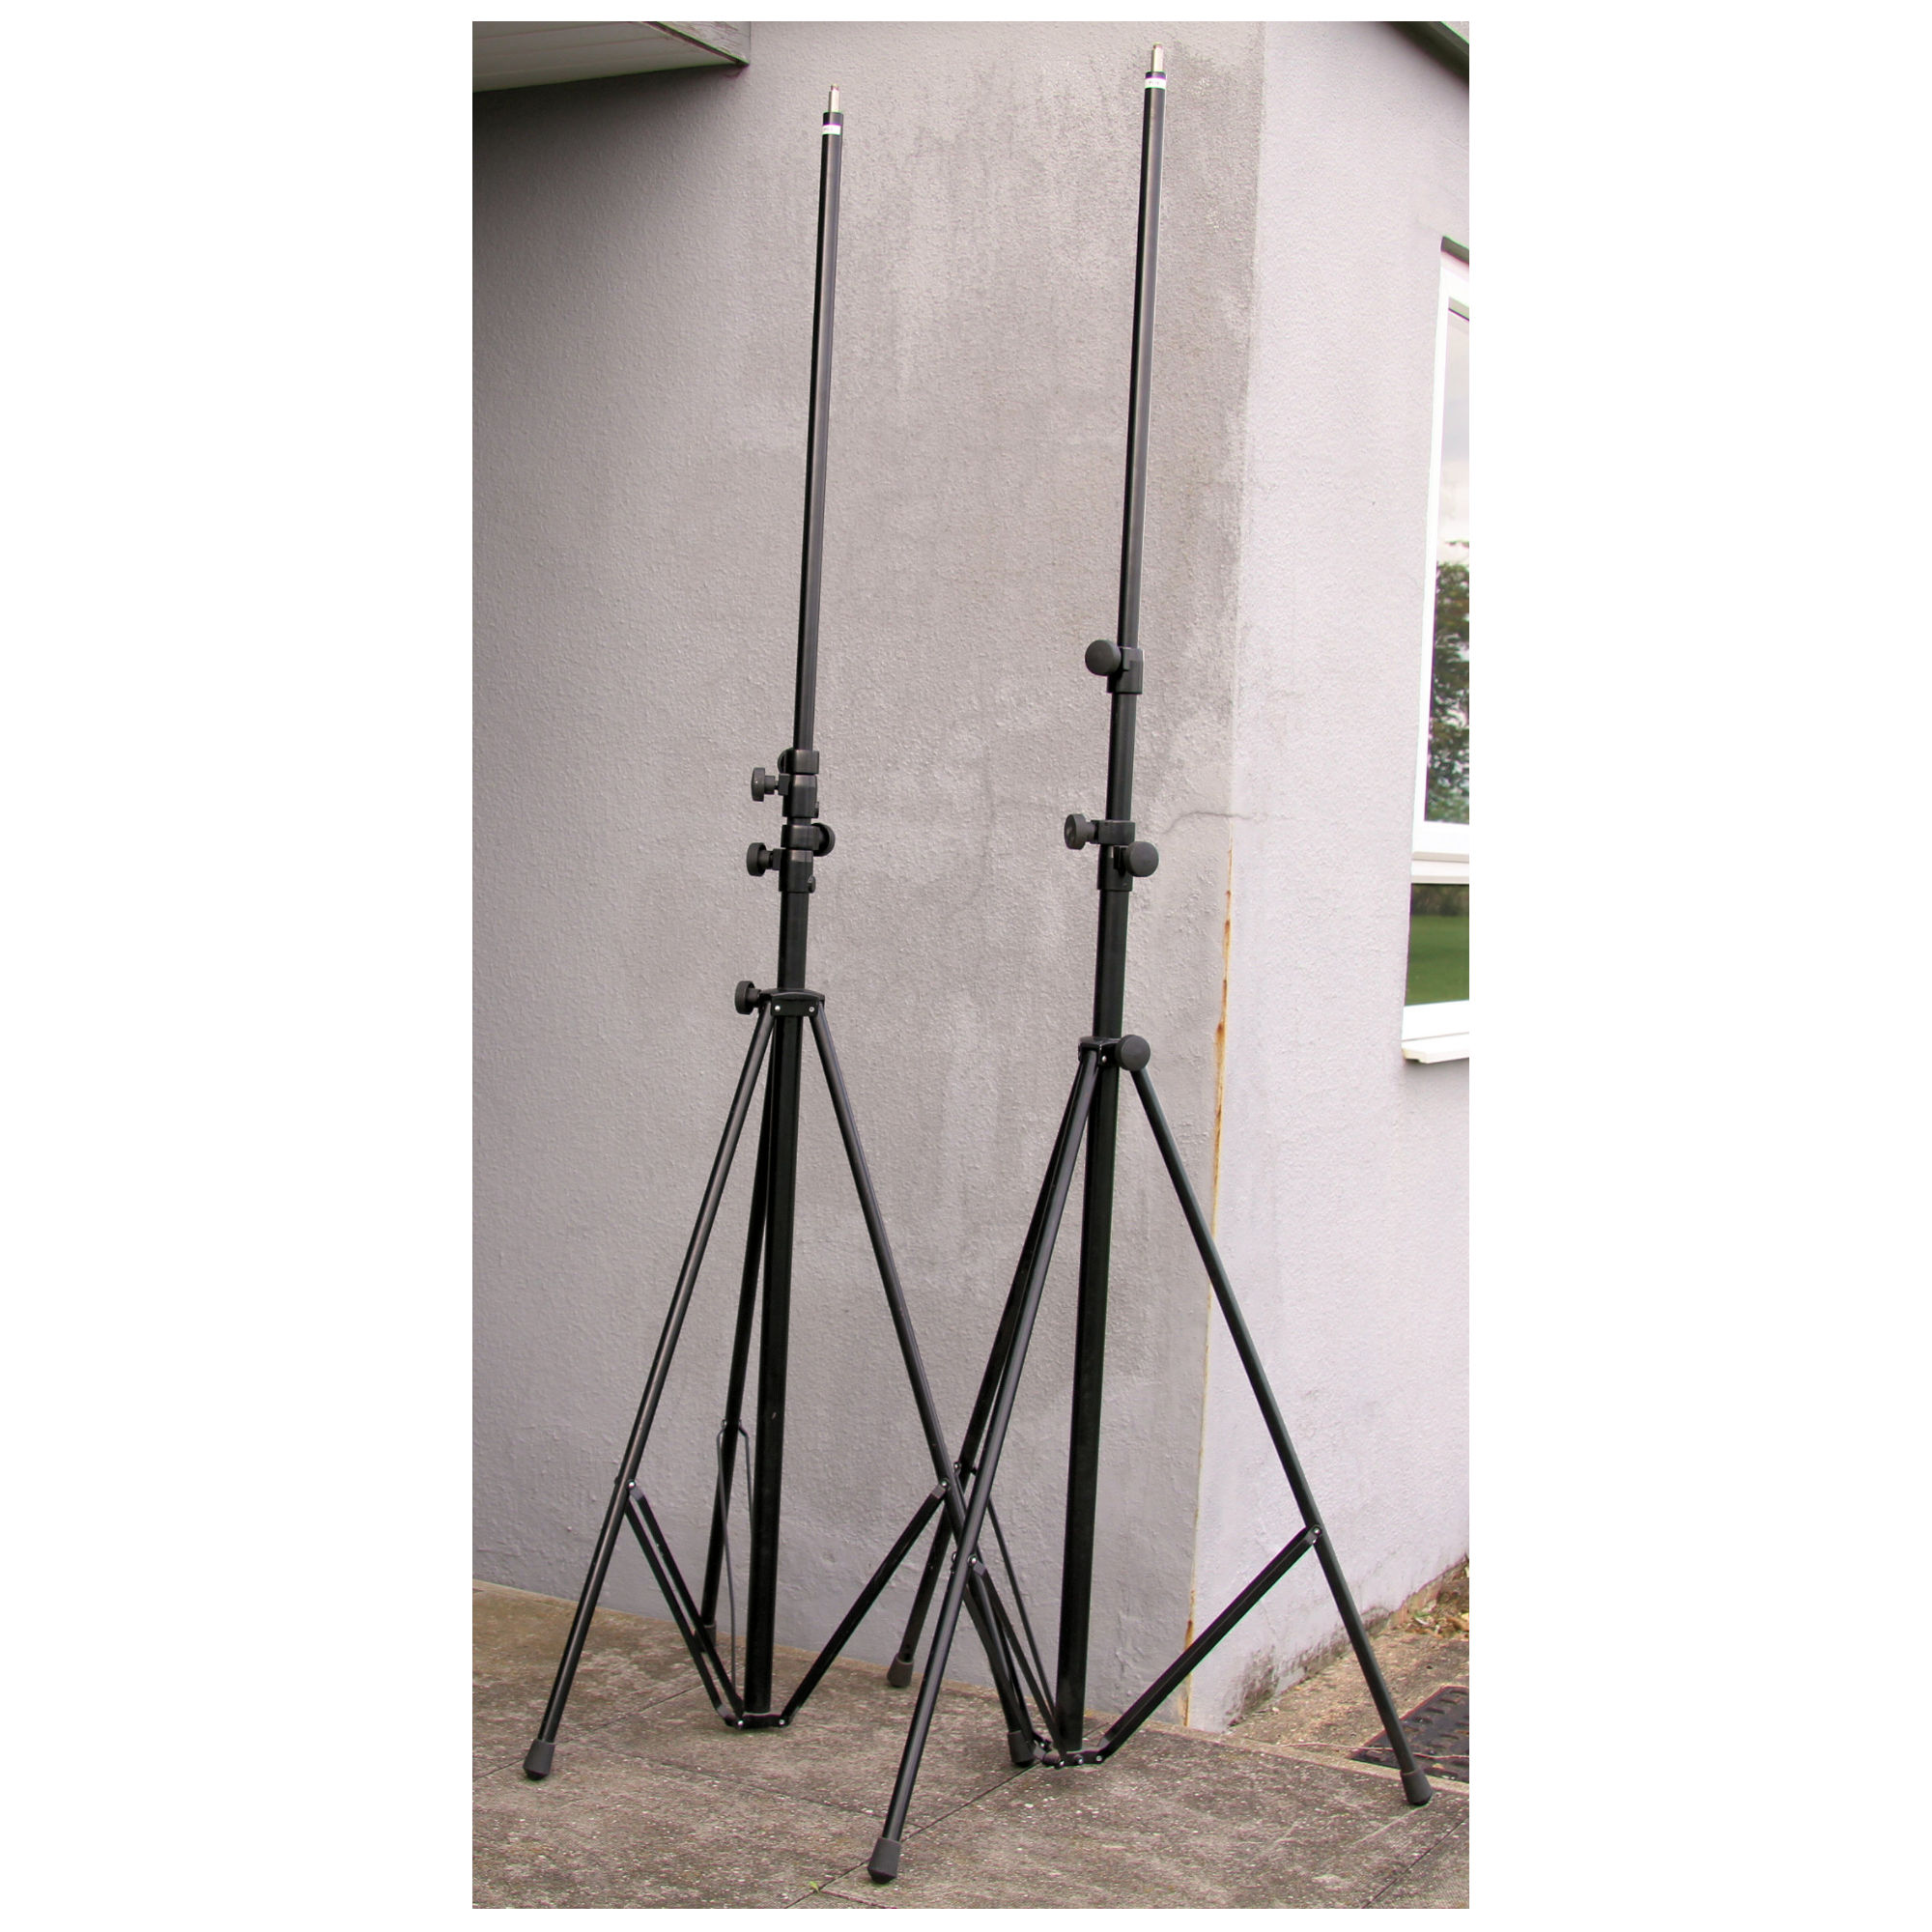 Boom Mic Stands